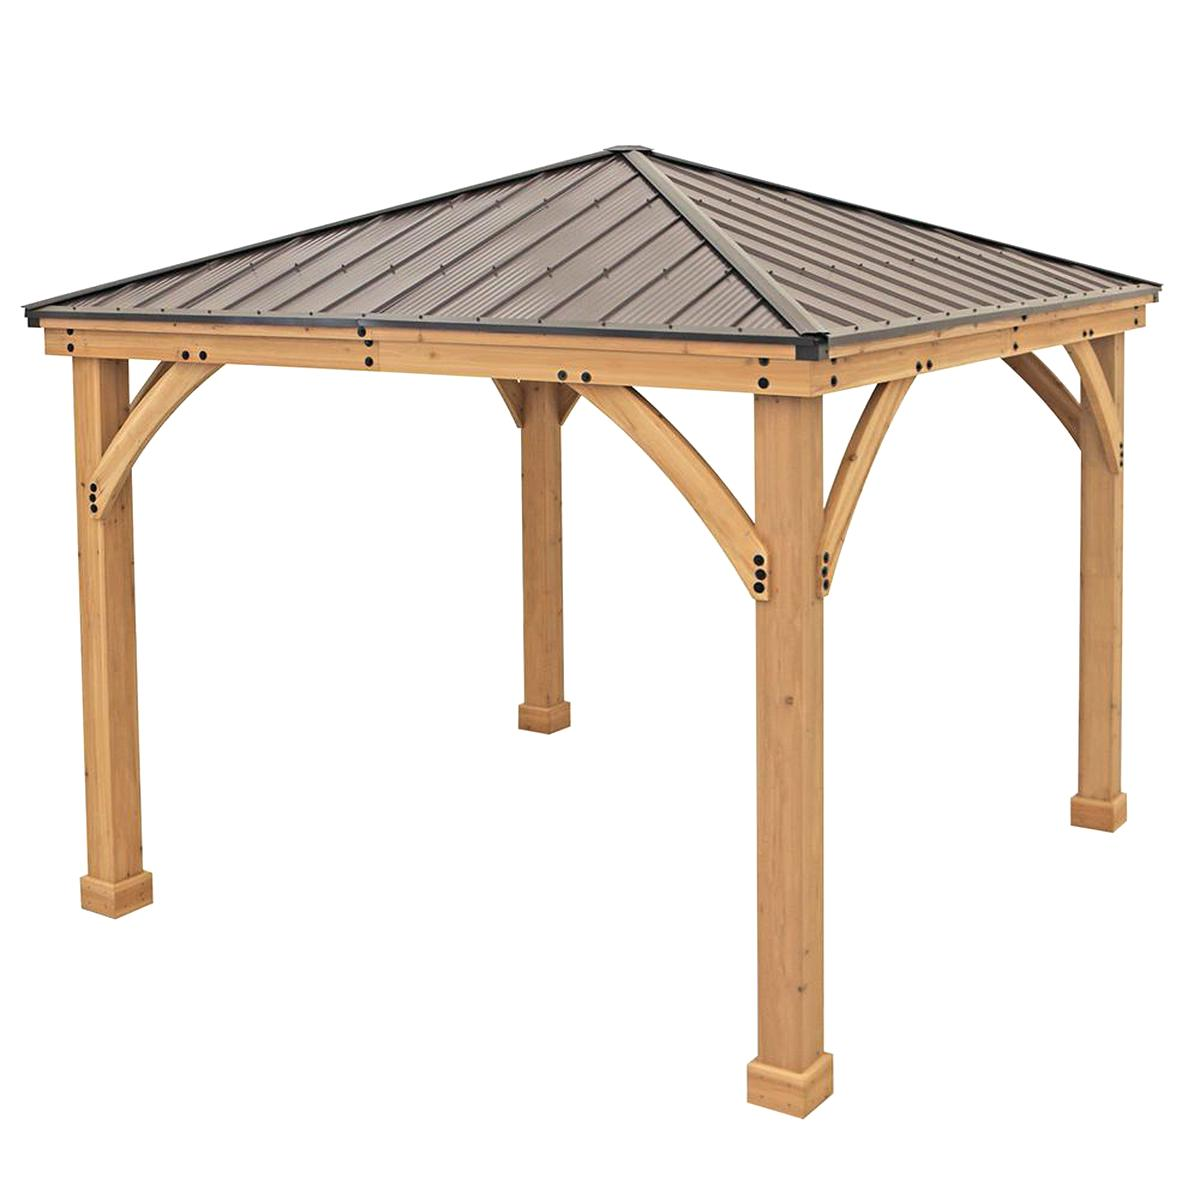 Wood Gazebo for sale | Only 4 left at -60%